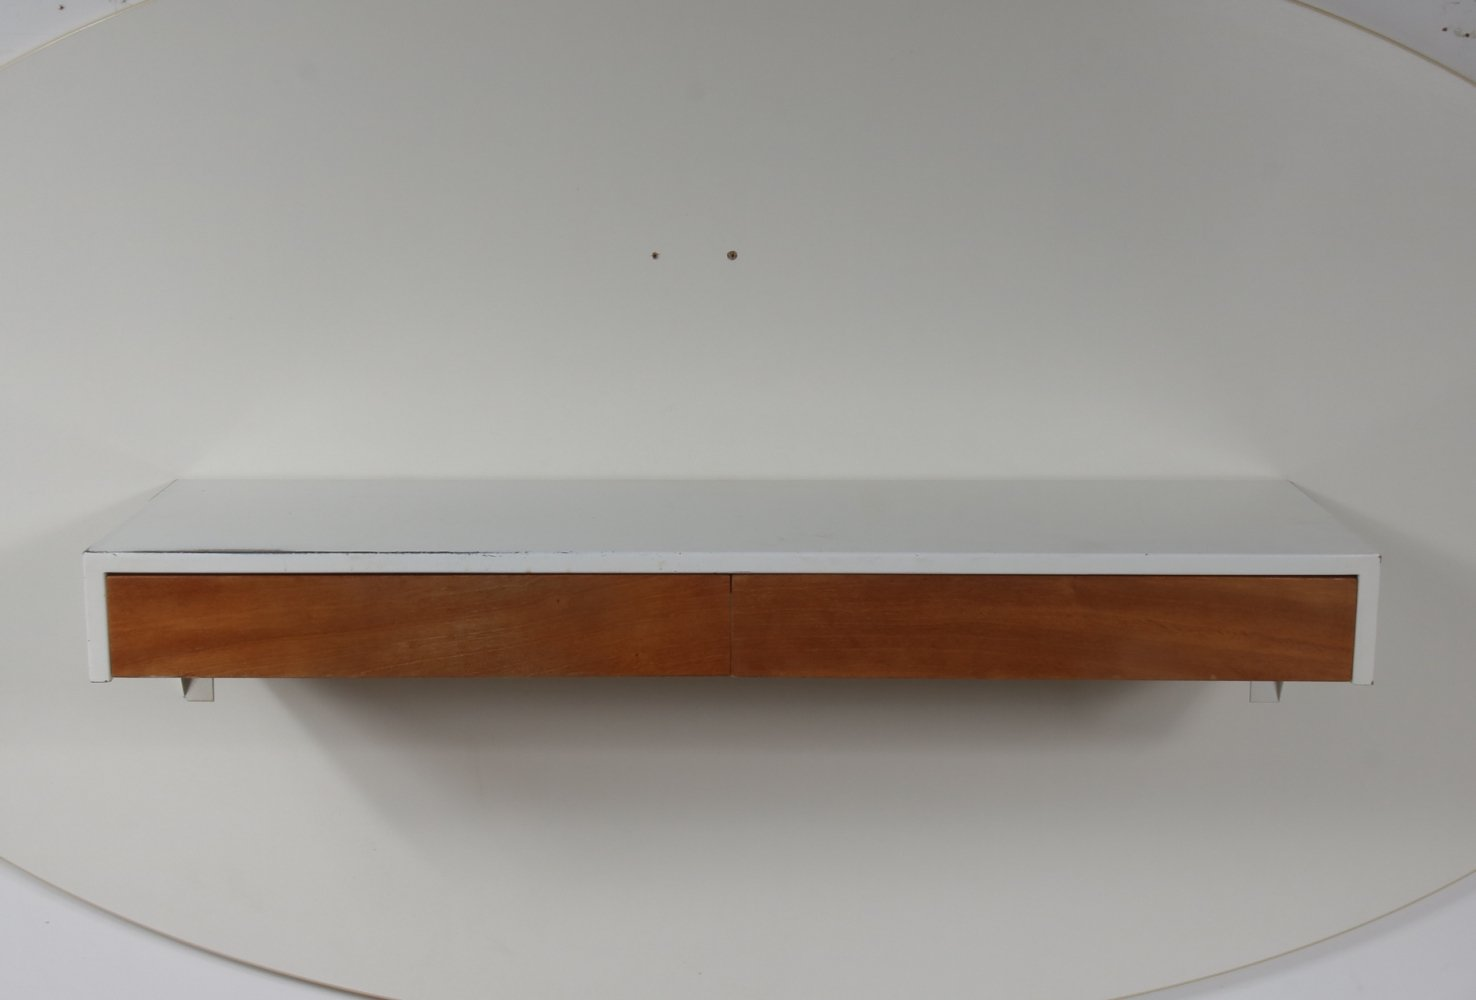 Metal wall console by Martin Visser for Spectrum, The Netherlands 1950s